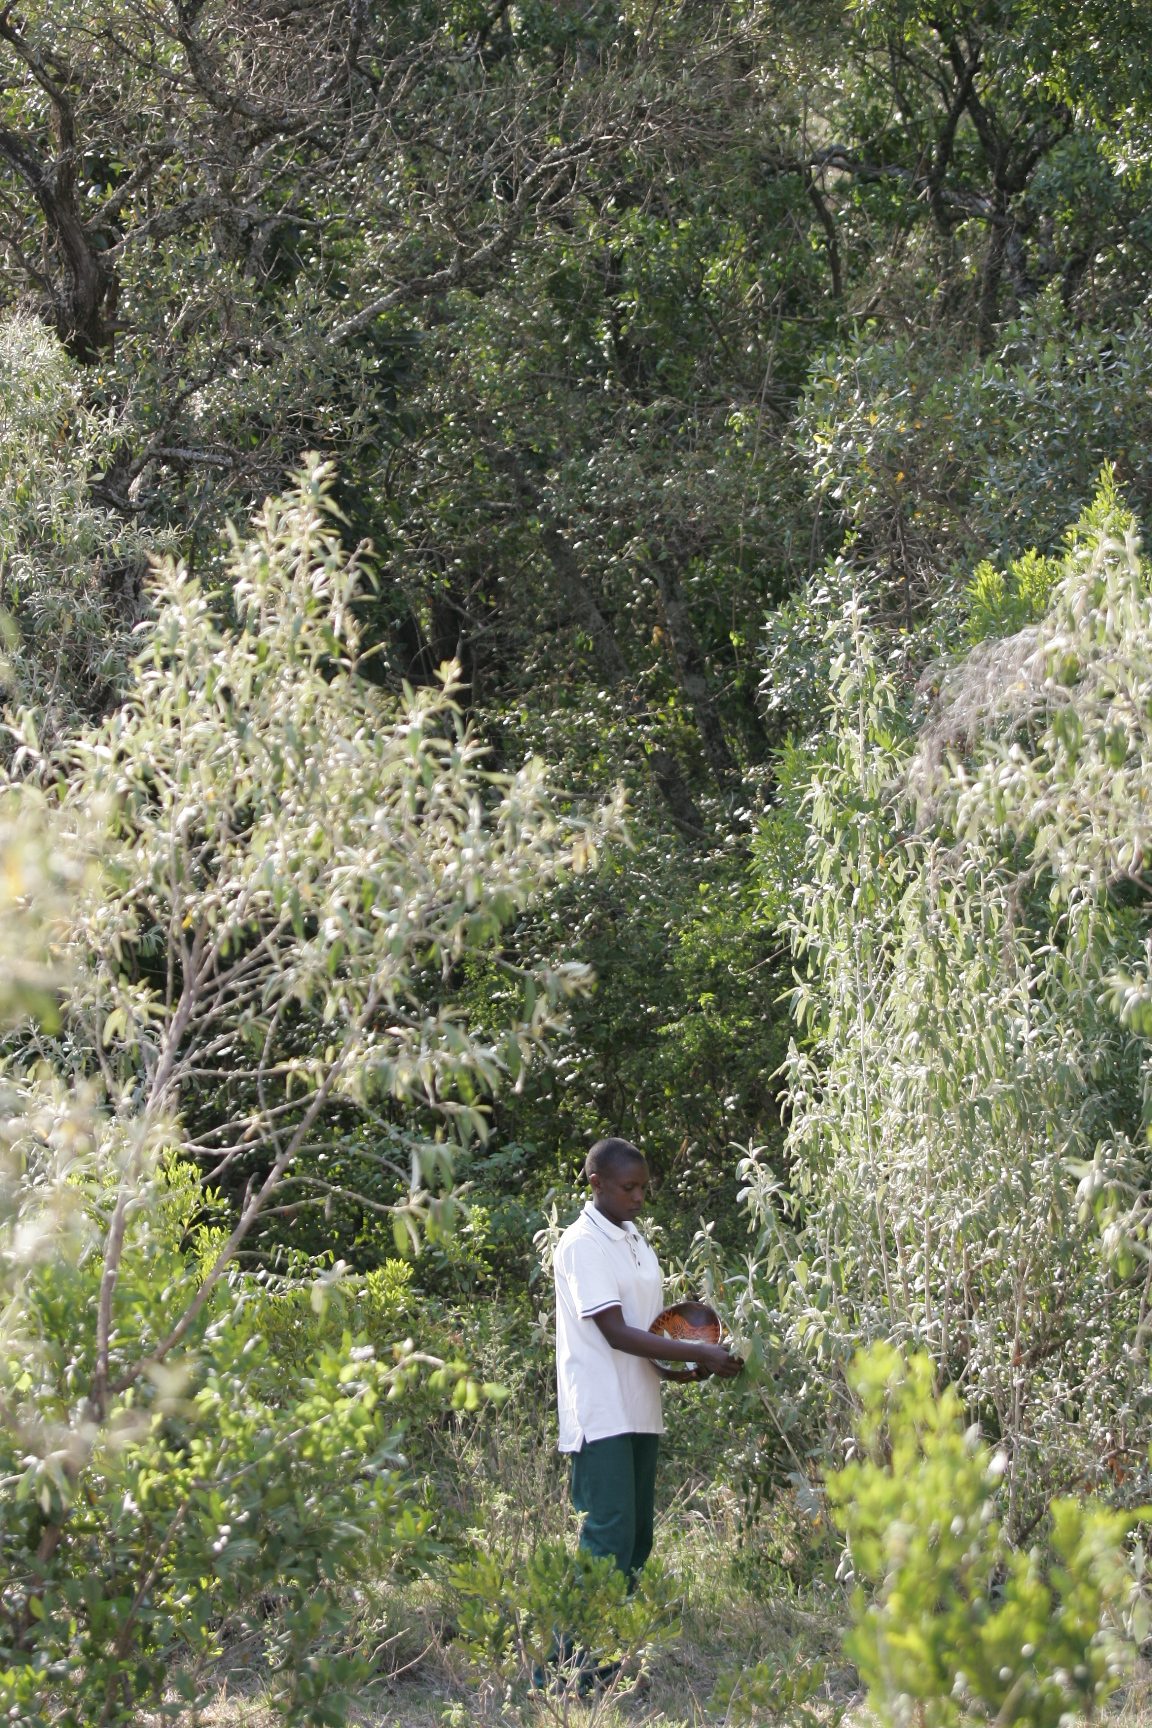 Collecting local flora for treatments